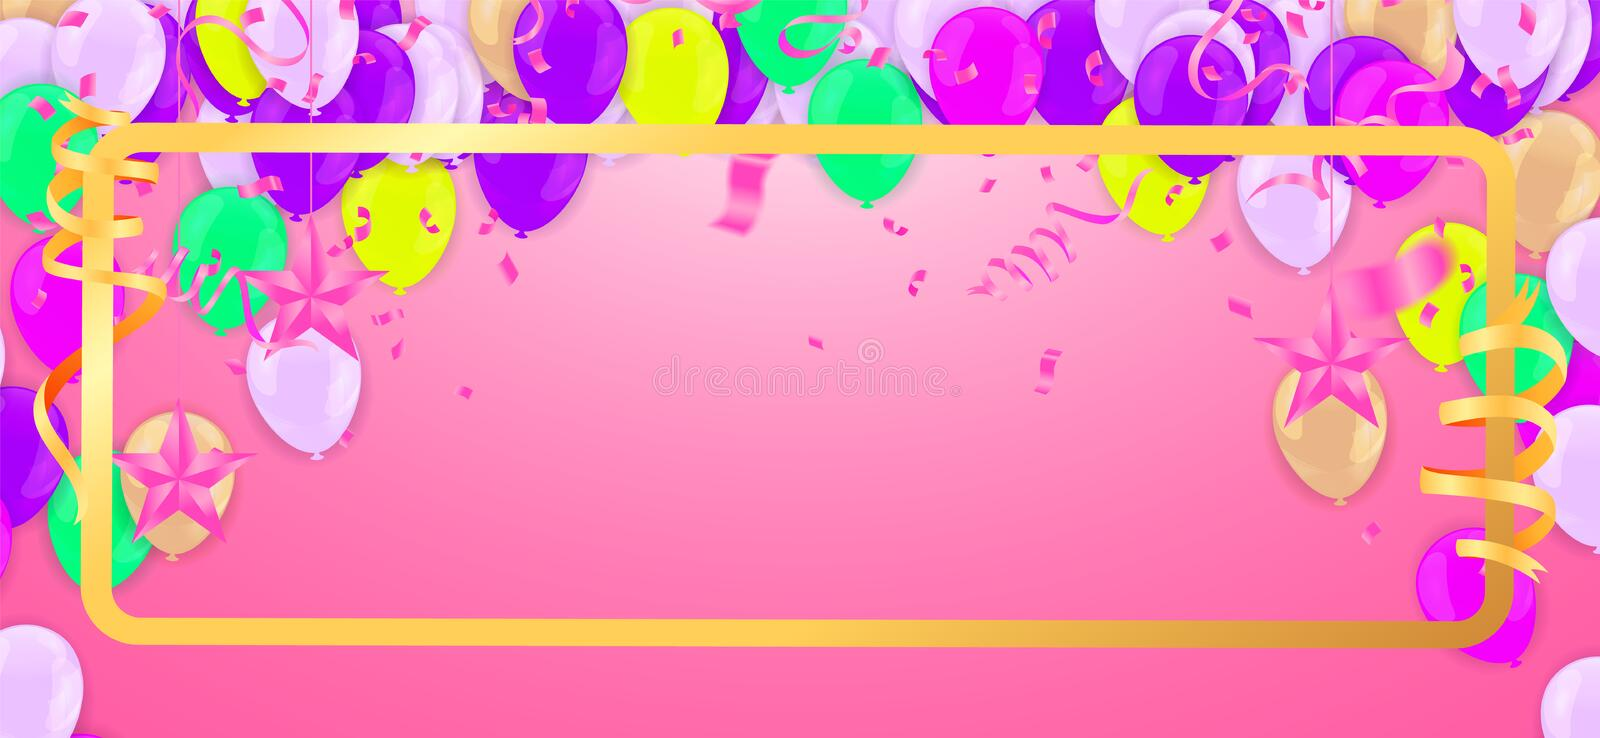 Celebration & Happy birthday banner and balloons colourful isolated on background stock illustration